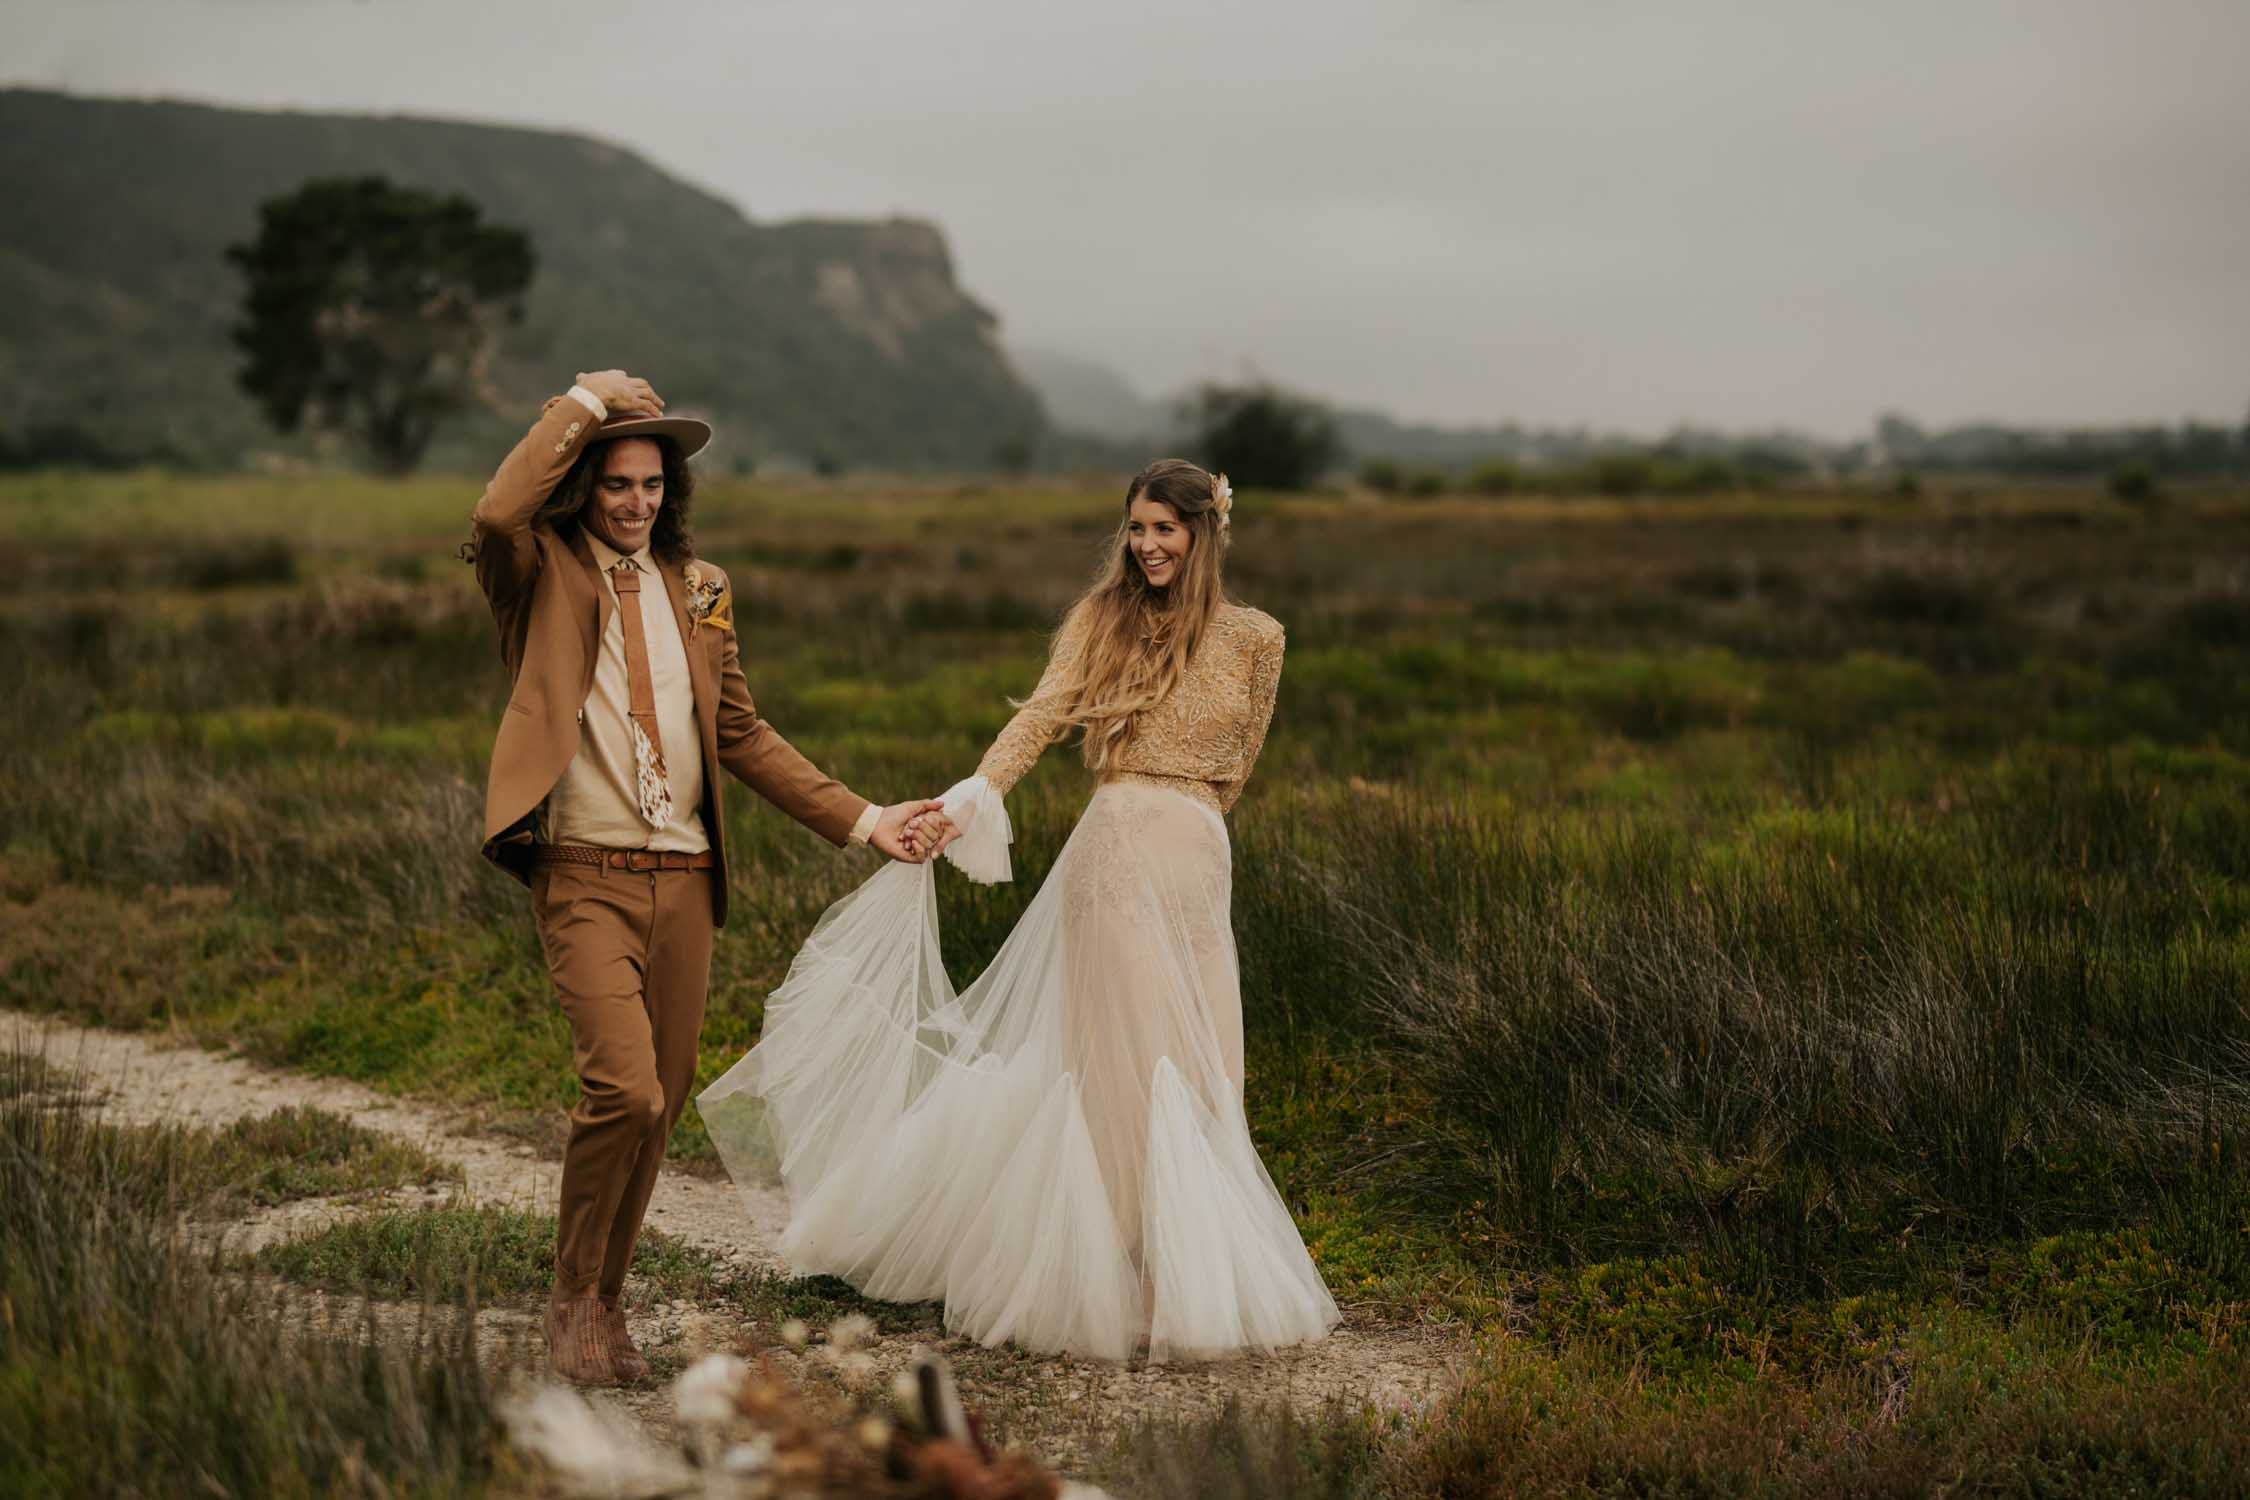 Photojournalistic Vancouver Wedding Photographer takes amazing romantic photo of boho bride and groom